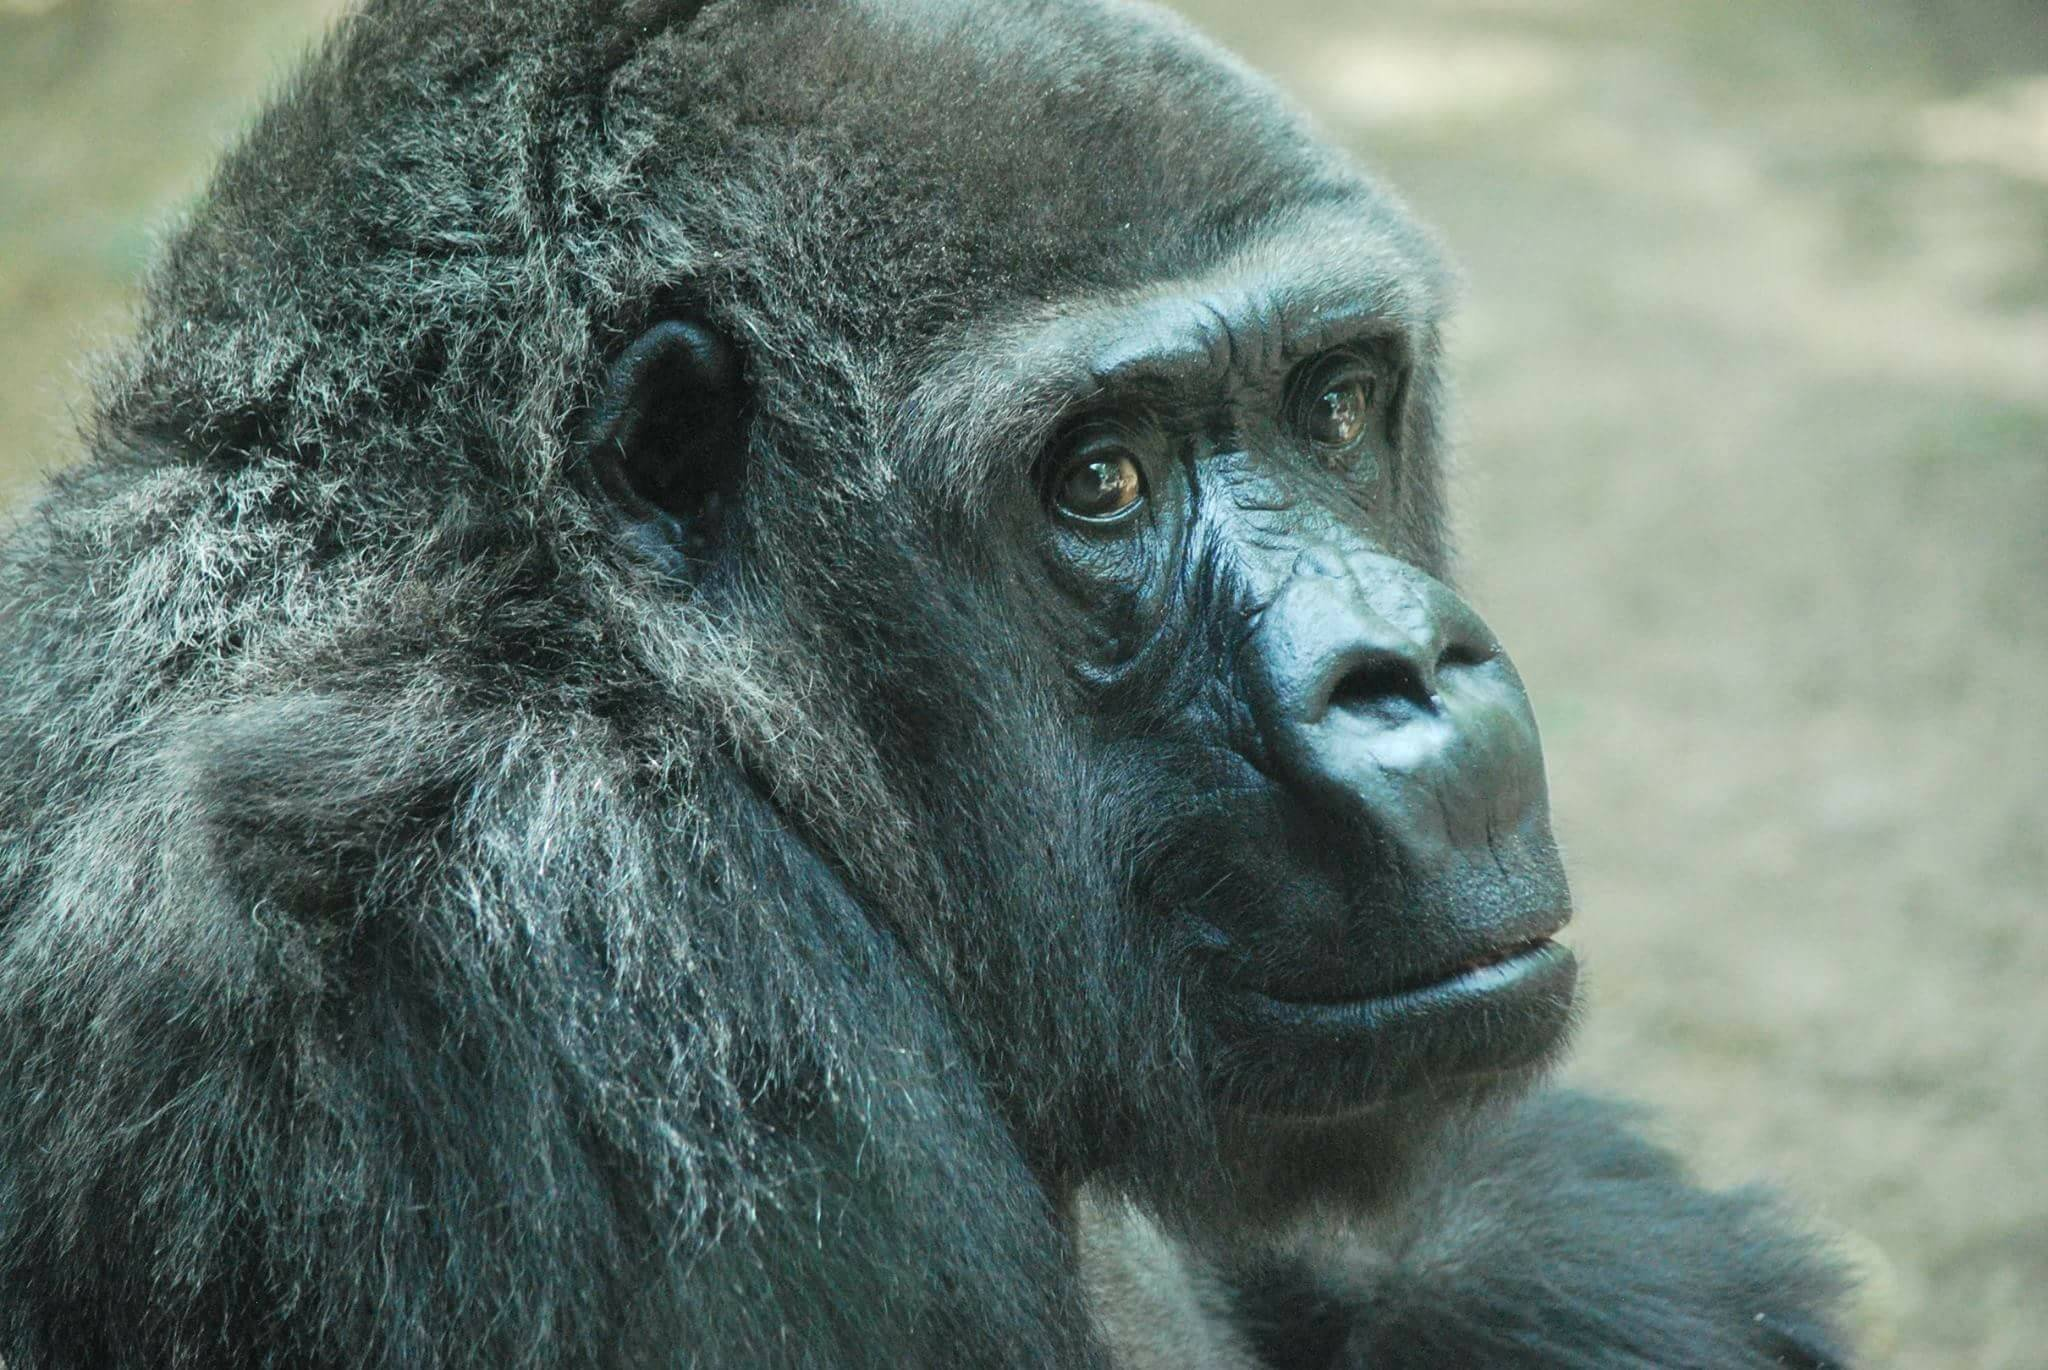 Gorilla at Topeka Zoo dies after 50 years living there